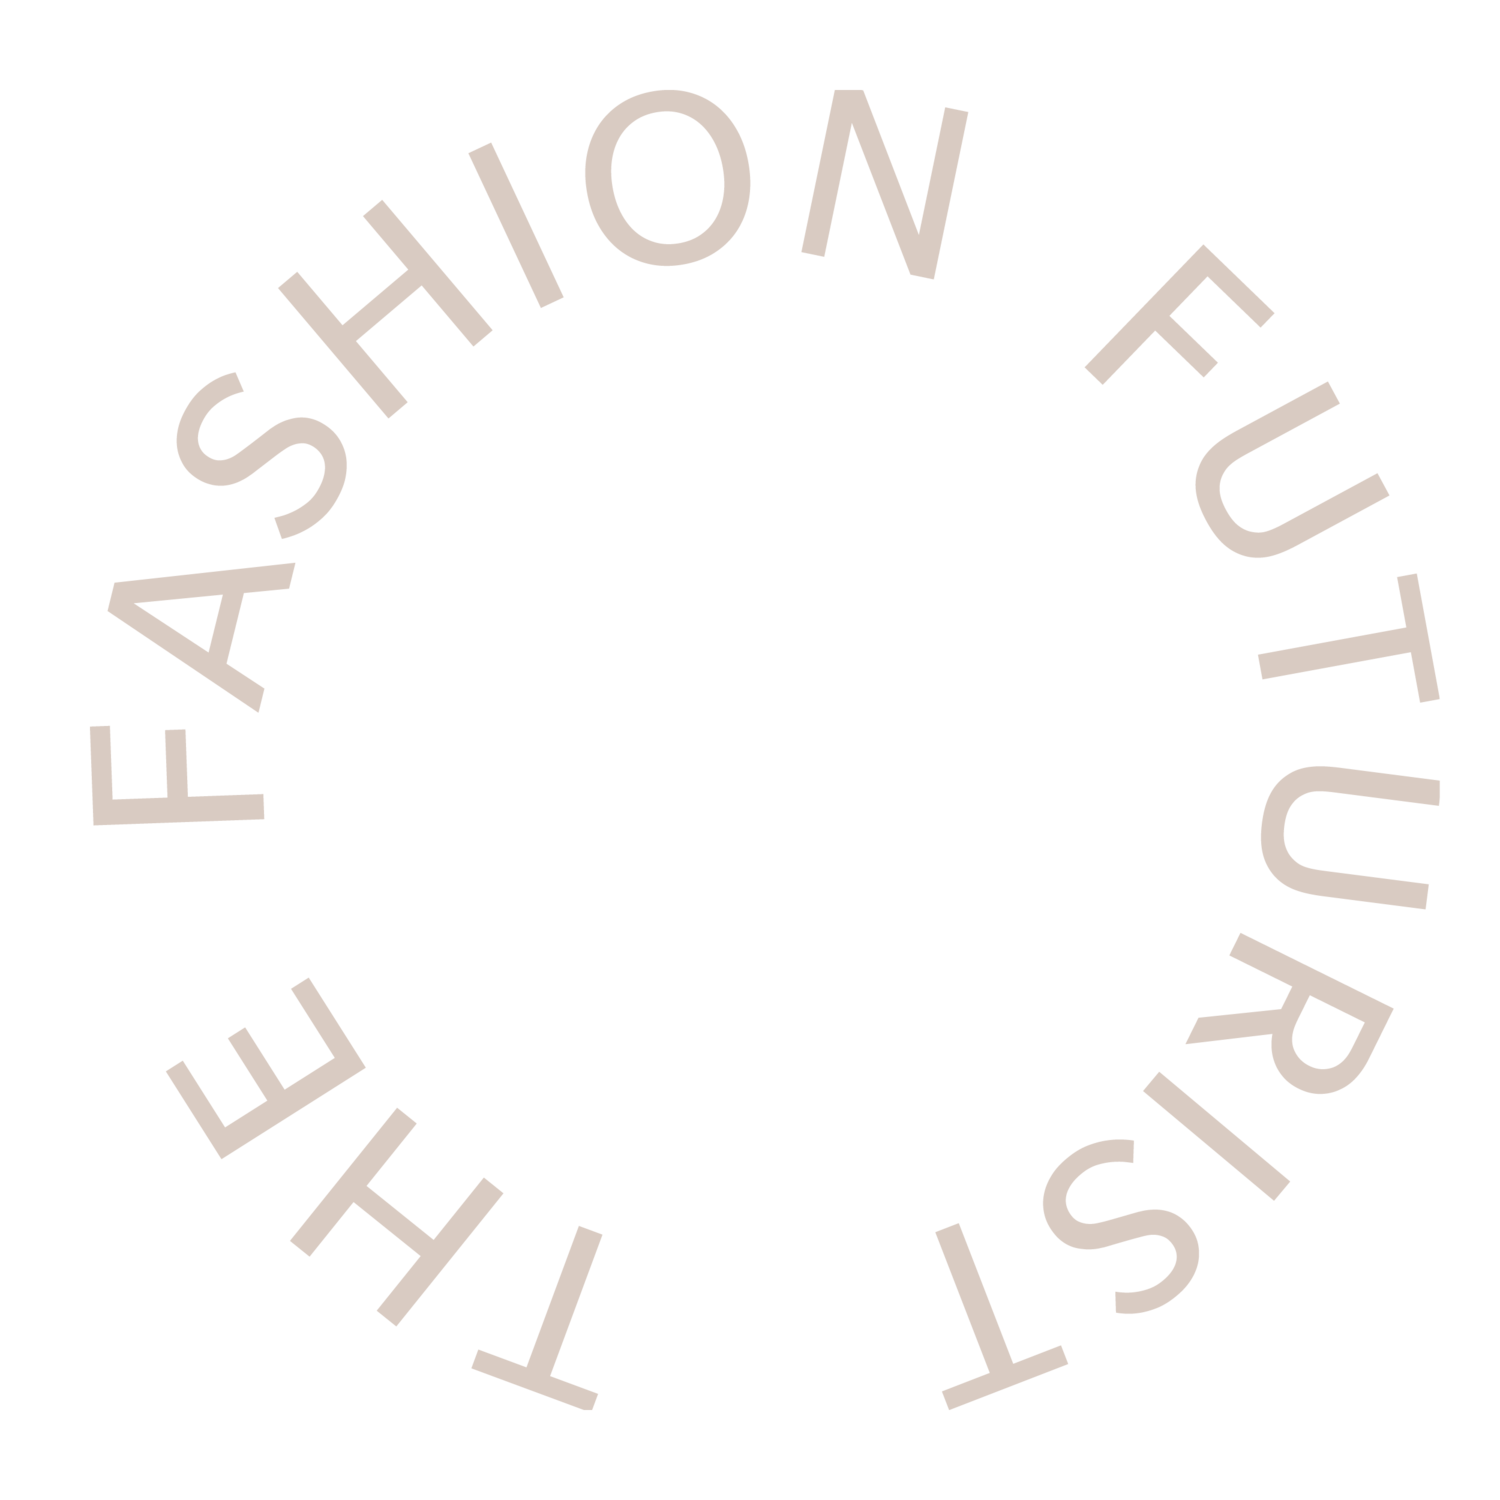 THE FASHION FUTURIST